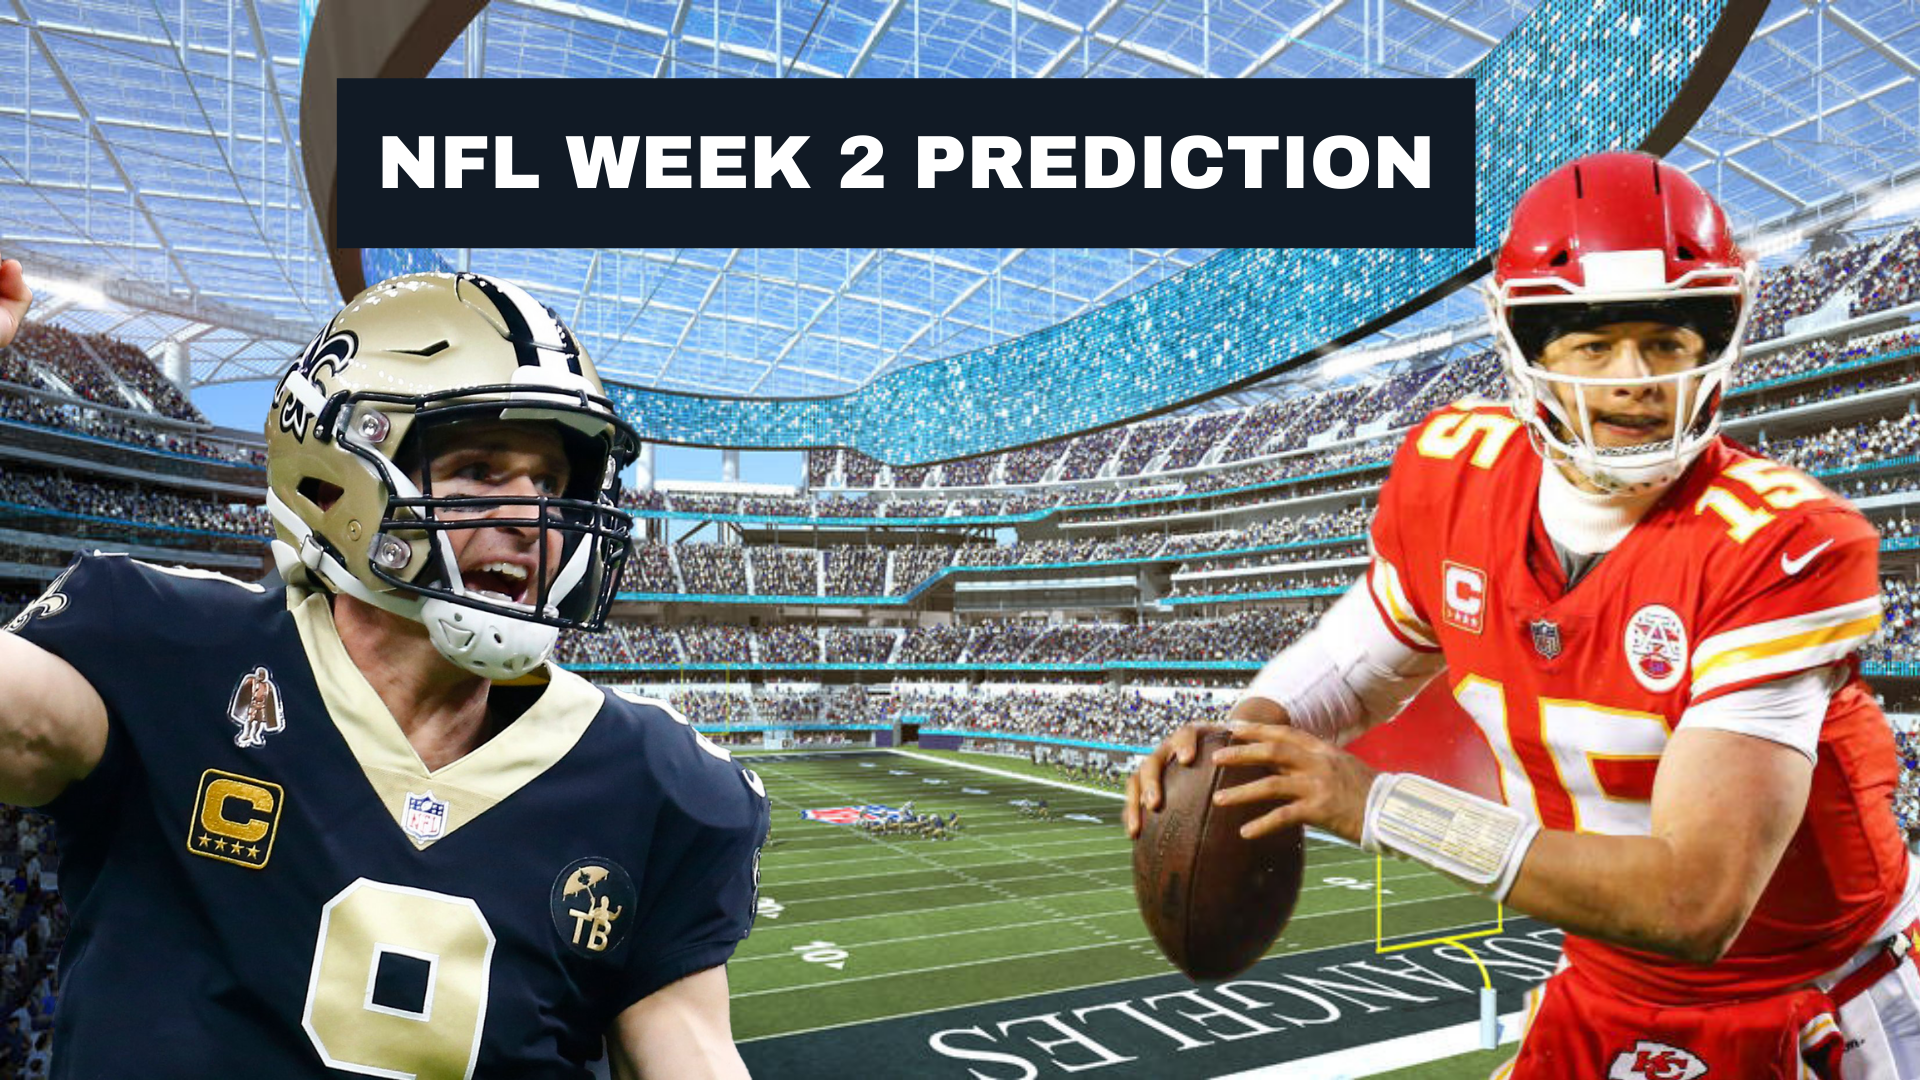 NFL Week 2 betting odds, predictions and expert picks - THE SPORTS ROOM